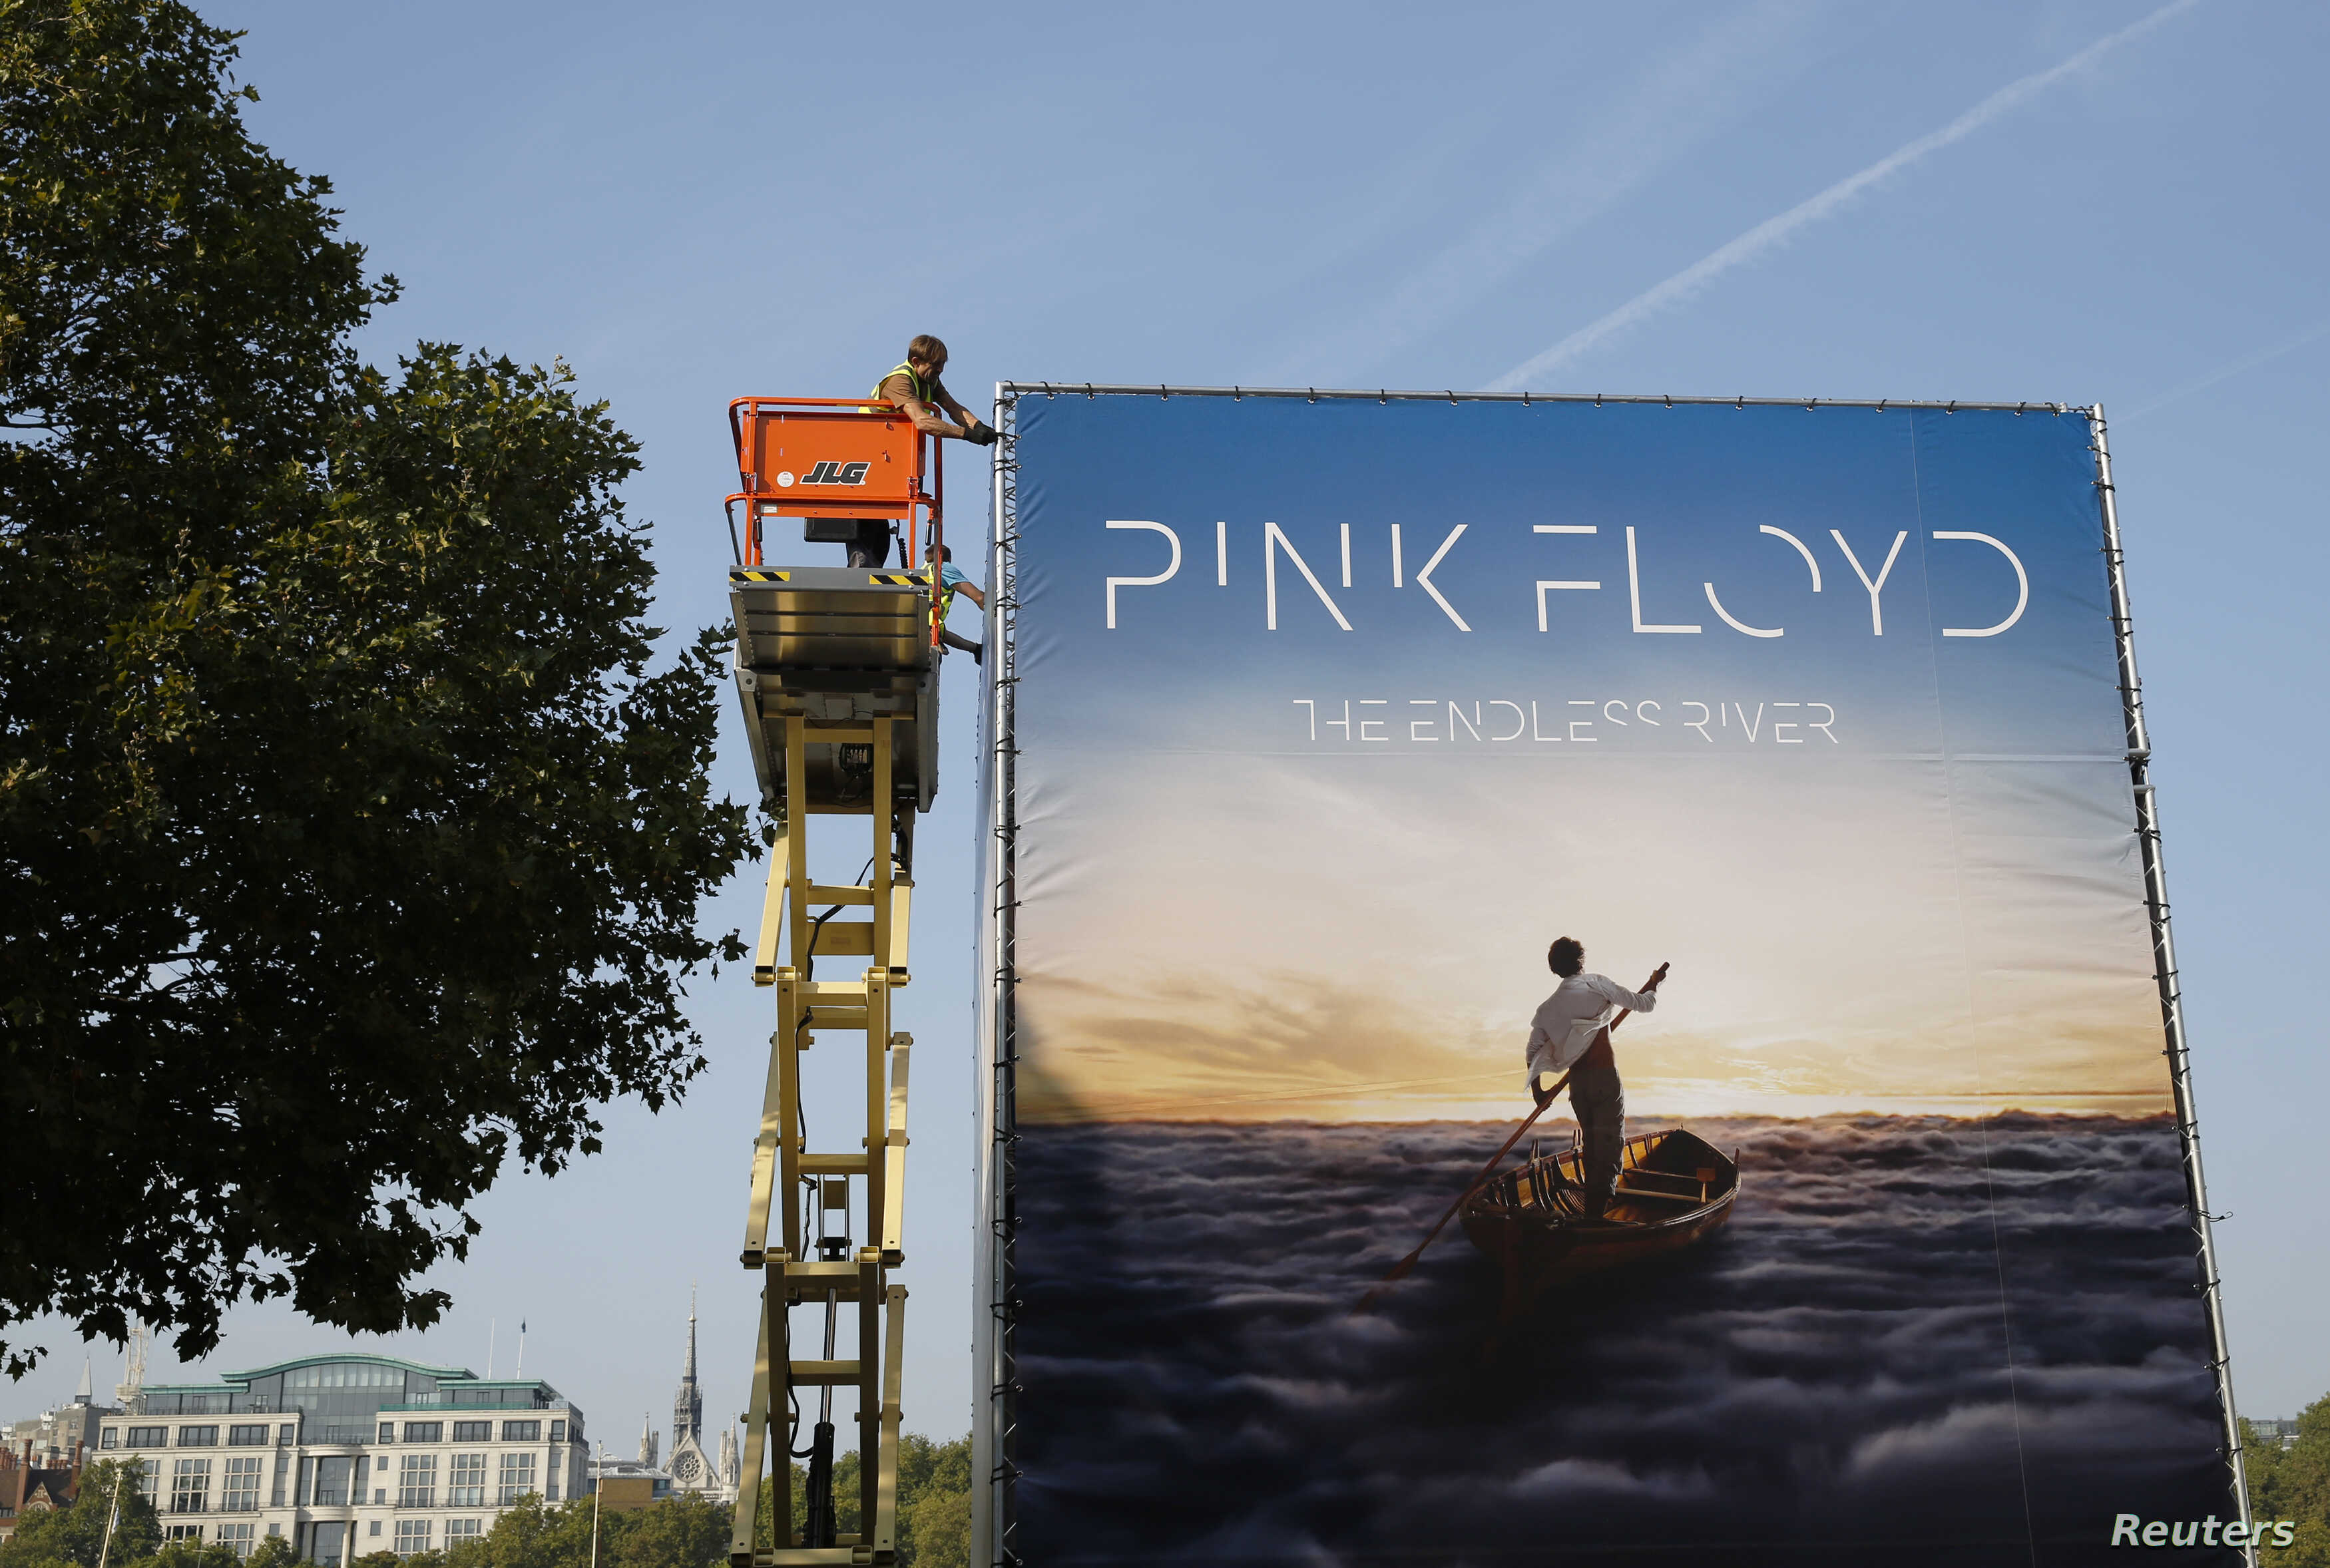 """Advertising for the new Pink Floyd album """"The Endless River"""" is installed on a four-sided billboard on the South Bank in London, Sept. 22, 2014."""